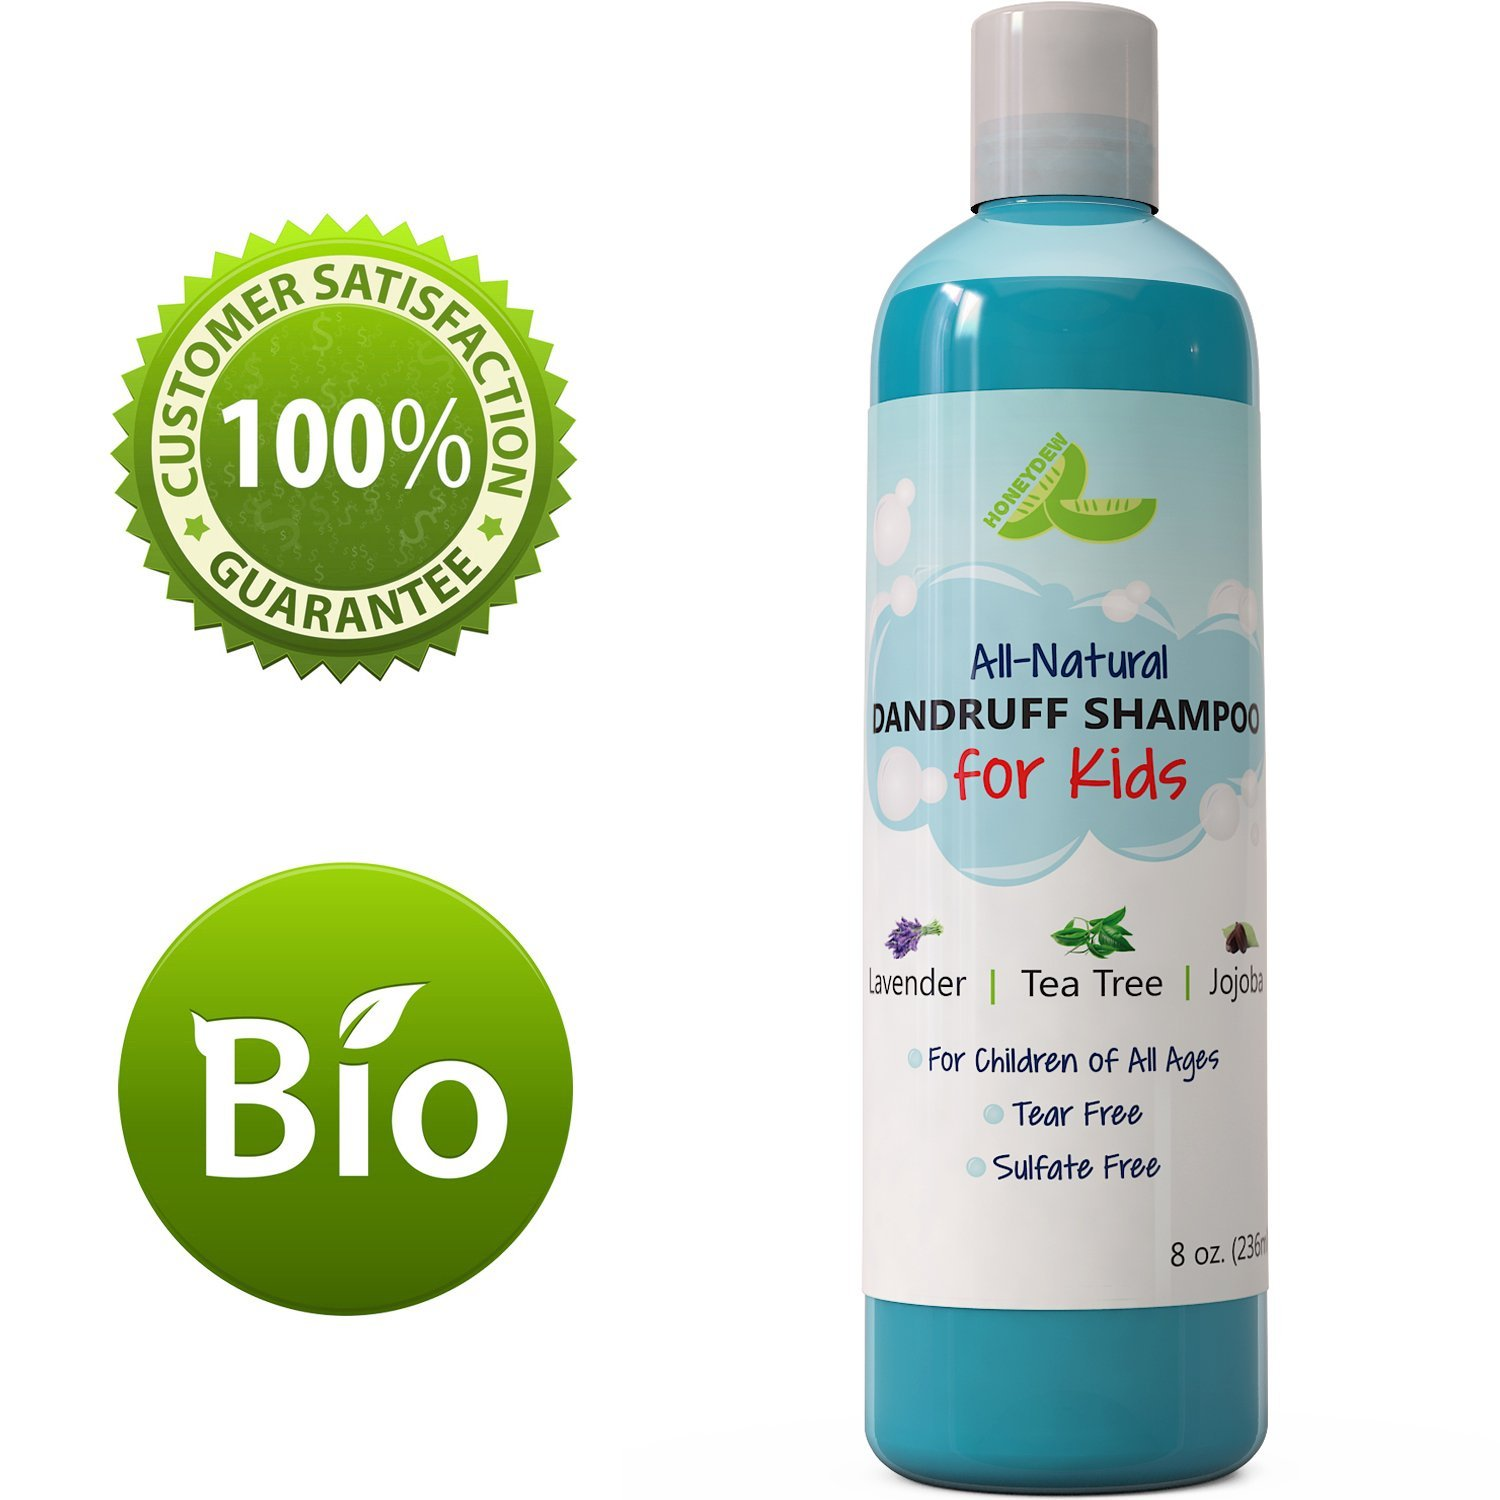 Honeydew Anti Dandruff Shampoo for Kids, Best Tear Free + Sulfate Free, Natural Hair Care Product, 8 Oz